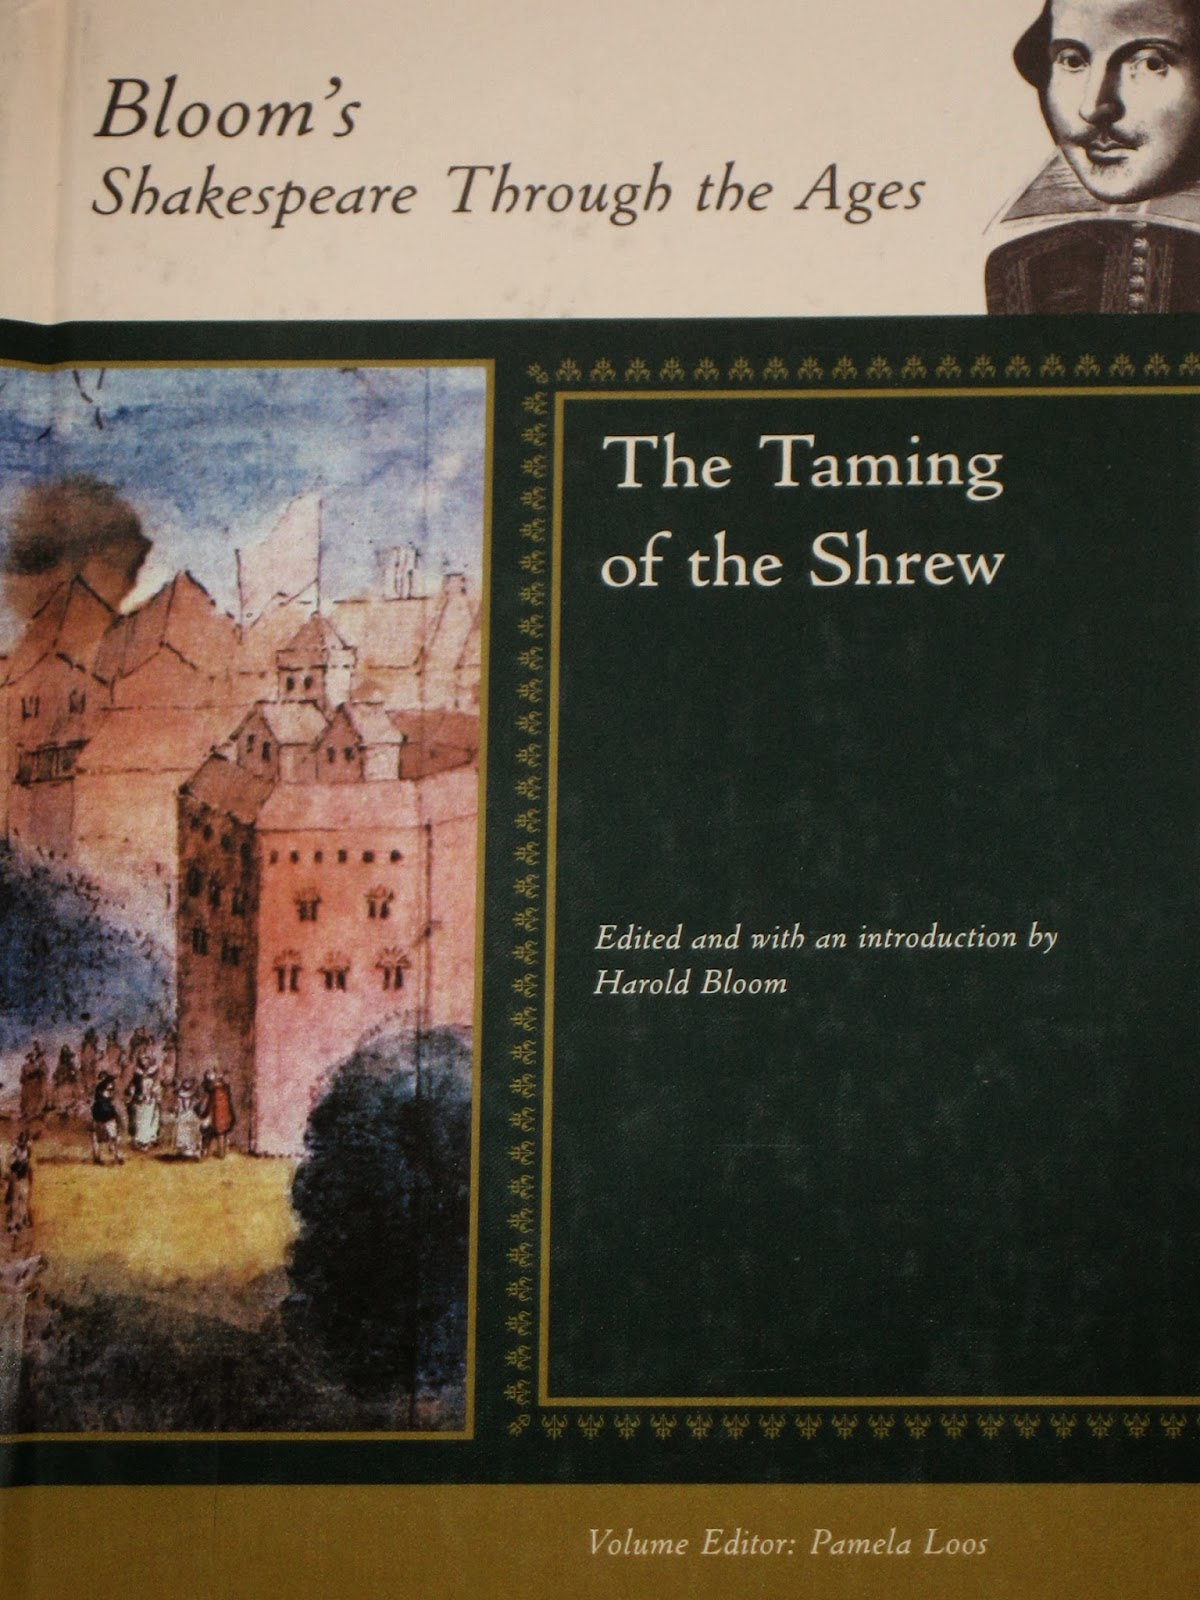 an analysis of the general view of life in taming of the shrew by william shakespeare The taming of the shrew: a level york notes william shakespeare overview revision contents introduction the taming of the shrew: analysis, extract.